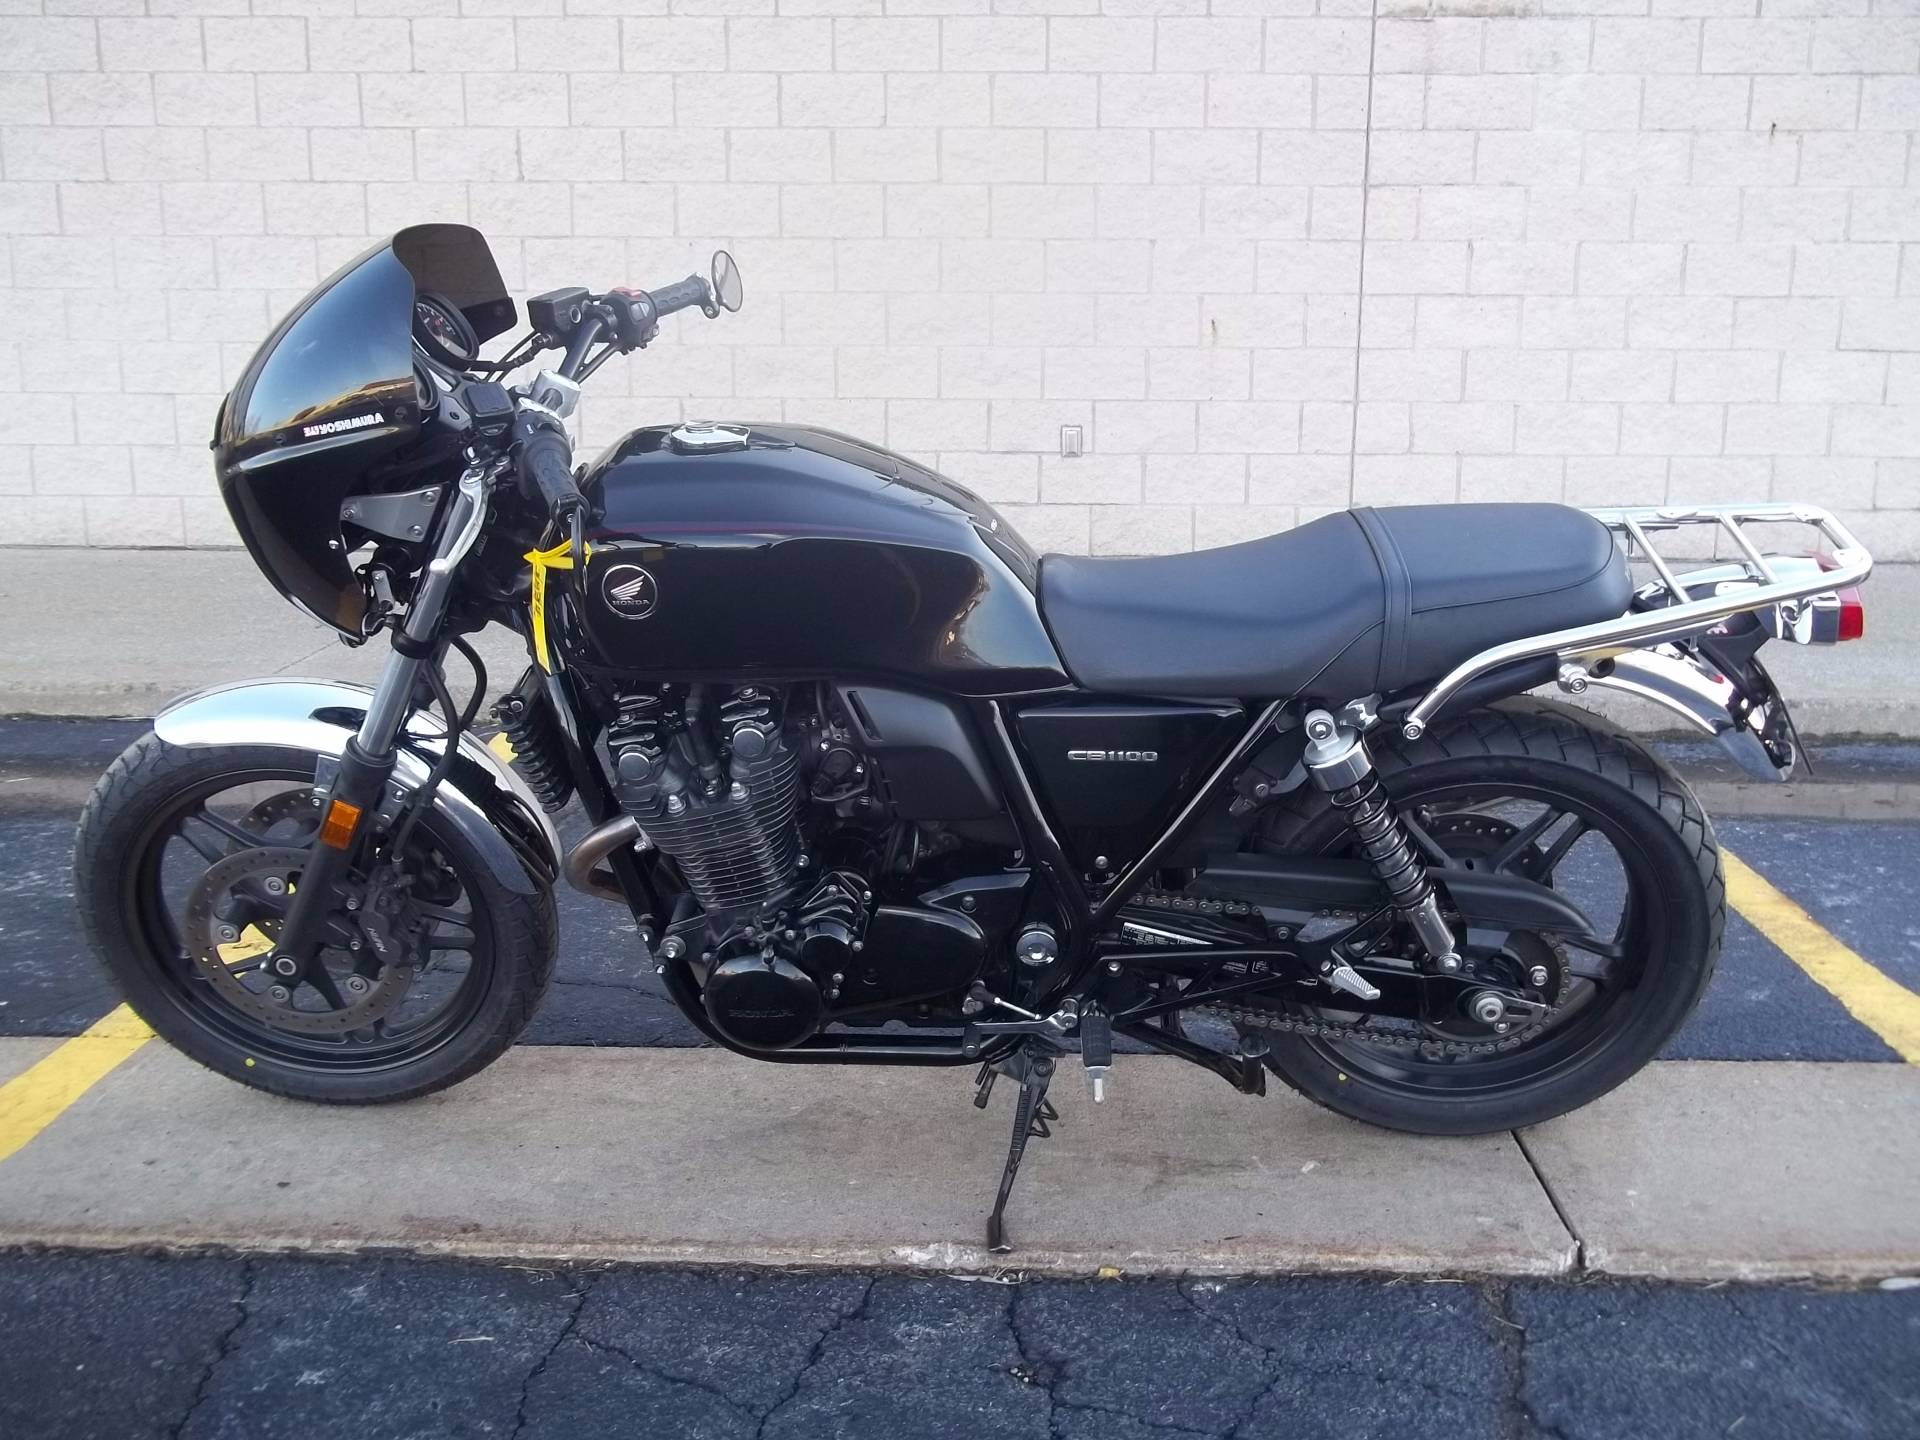 Used 2014 honda cb1100 motorcycles in canton oh stock for Honda financial payoff phone number